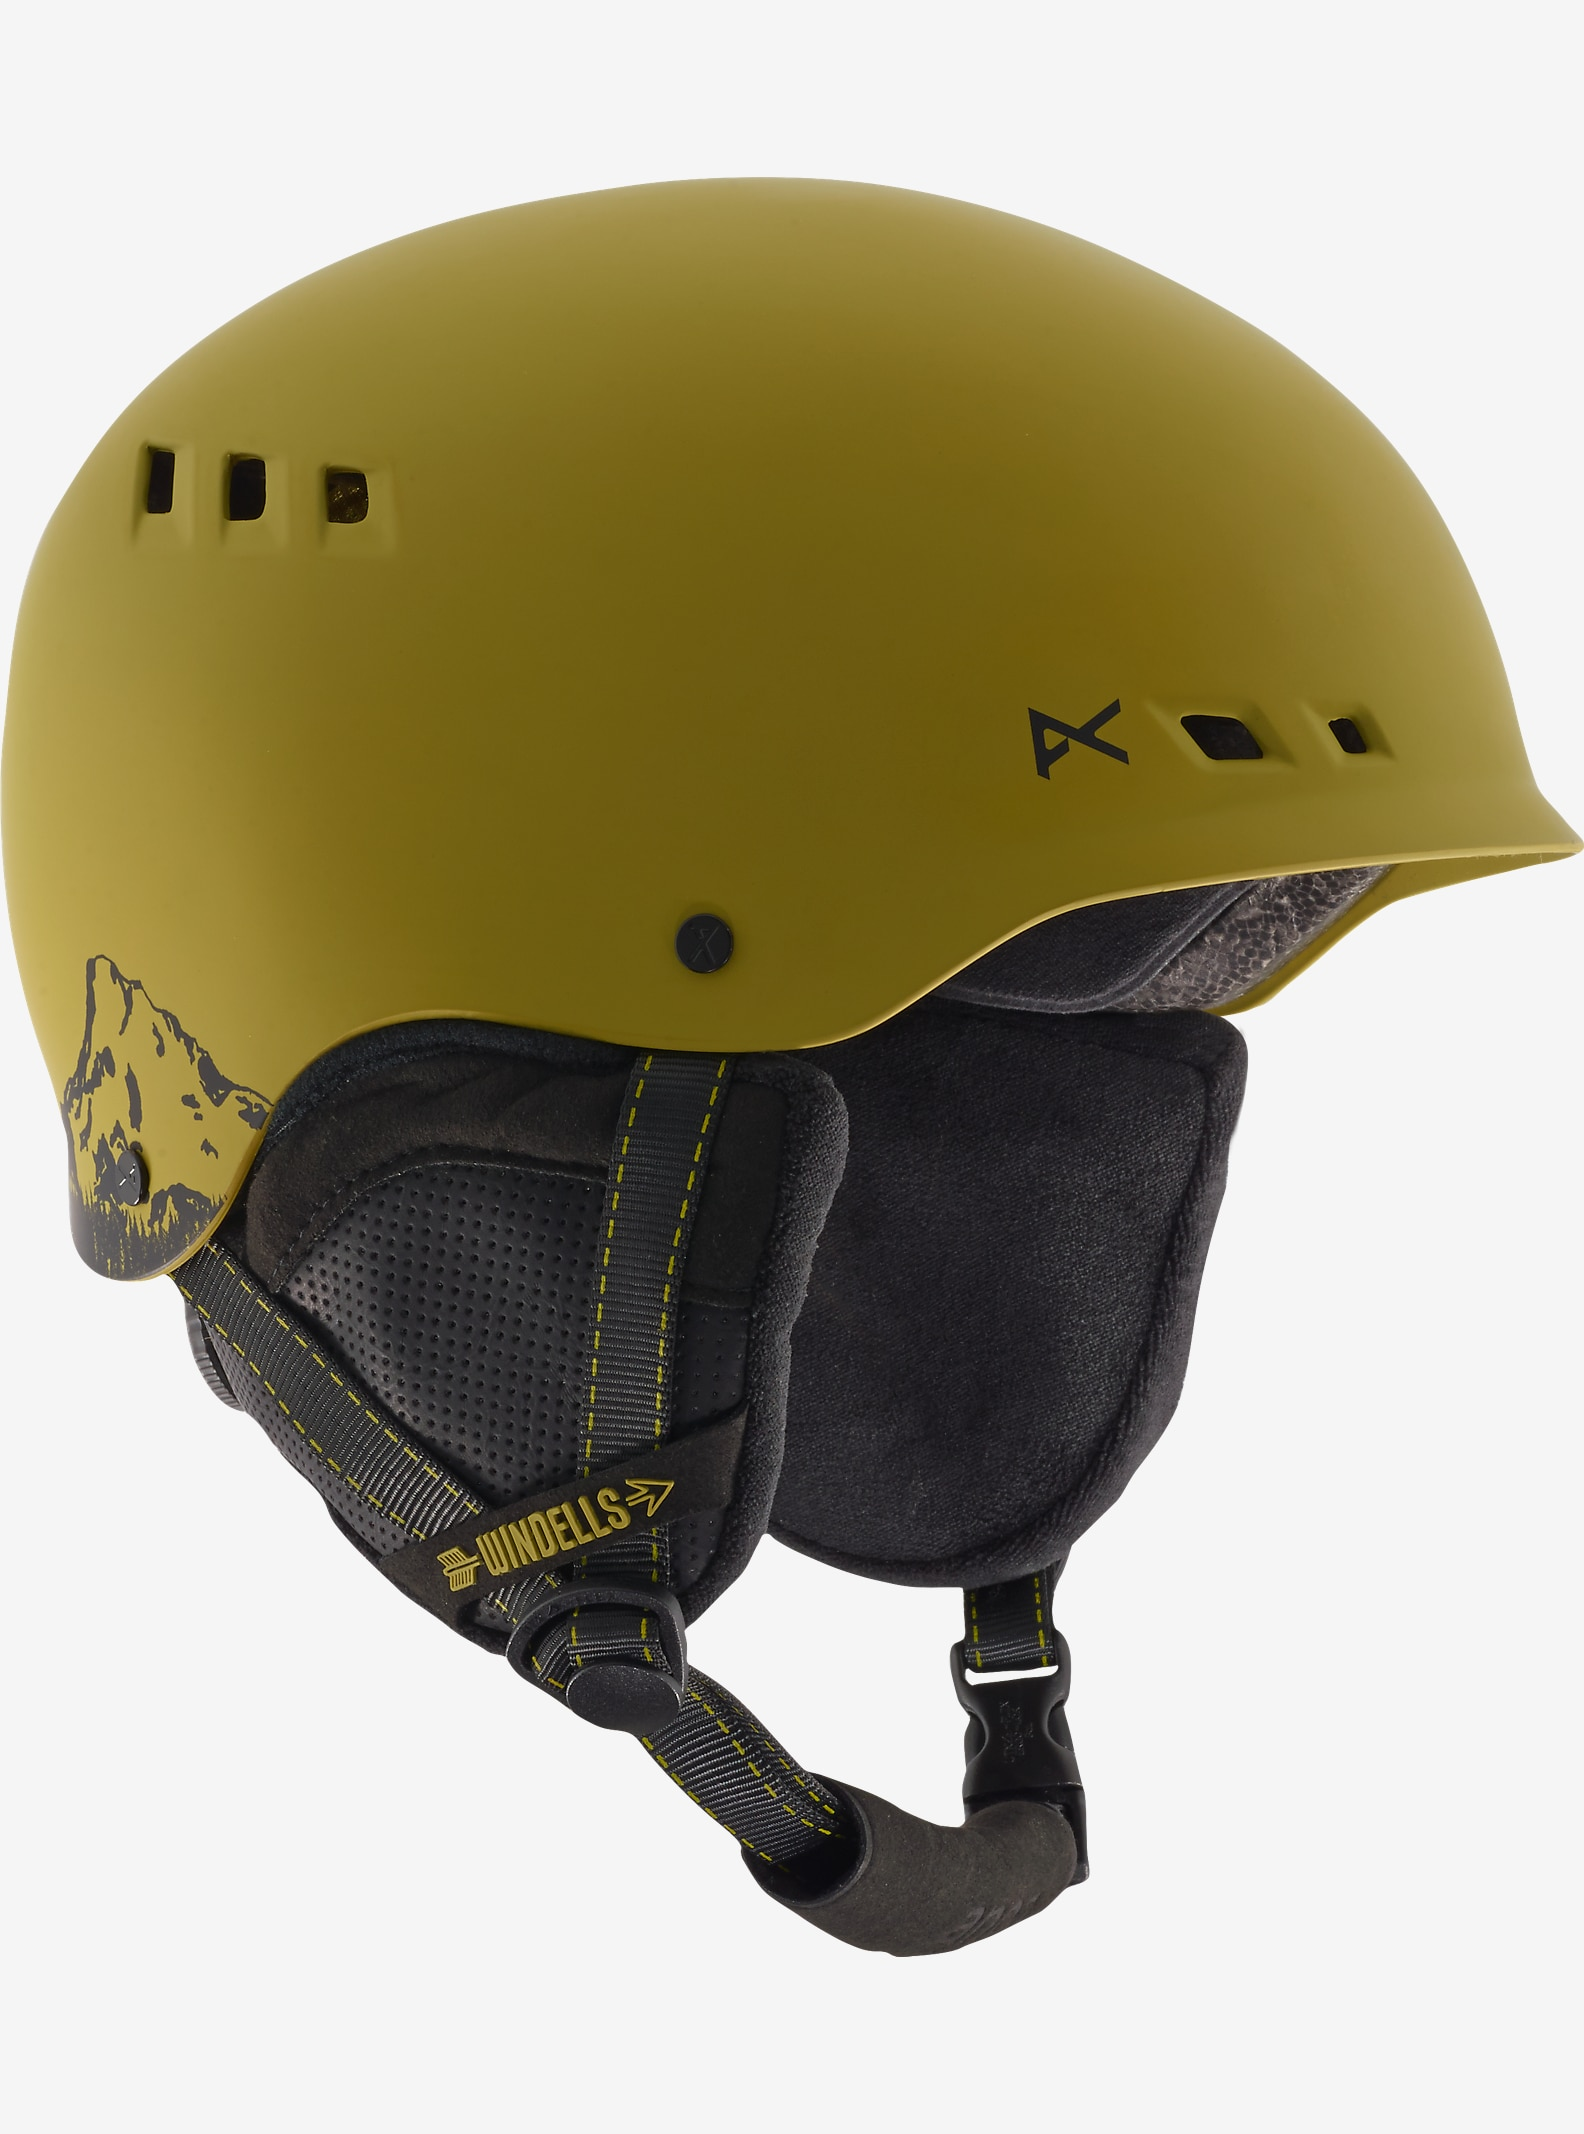 Windells x anon. Talan Helmet shown in Windells